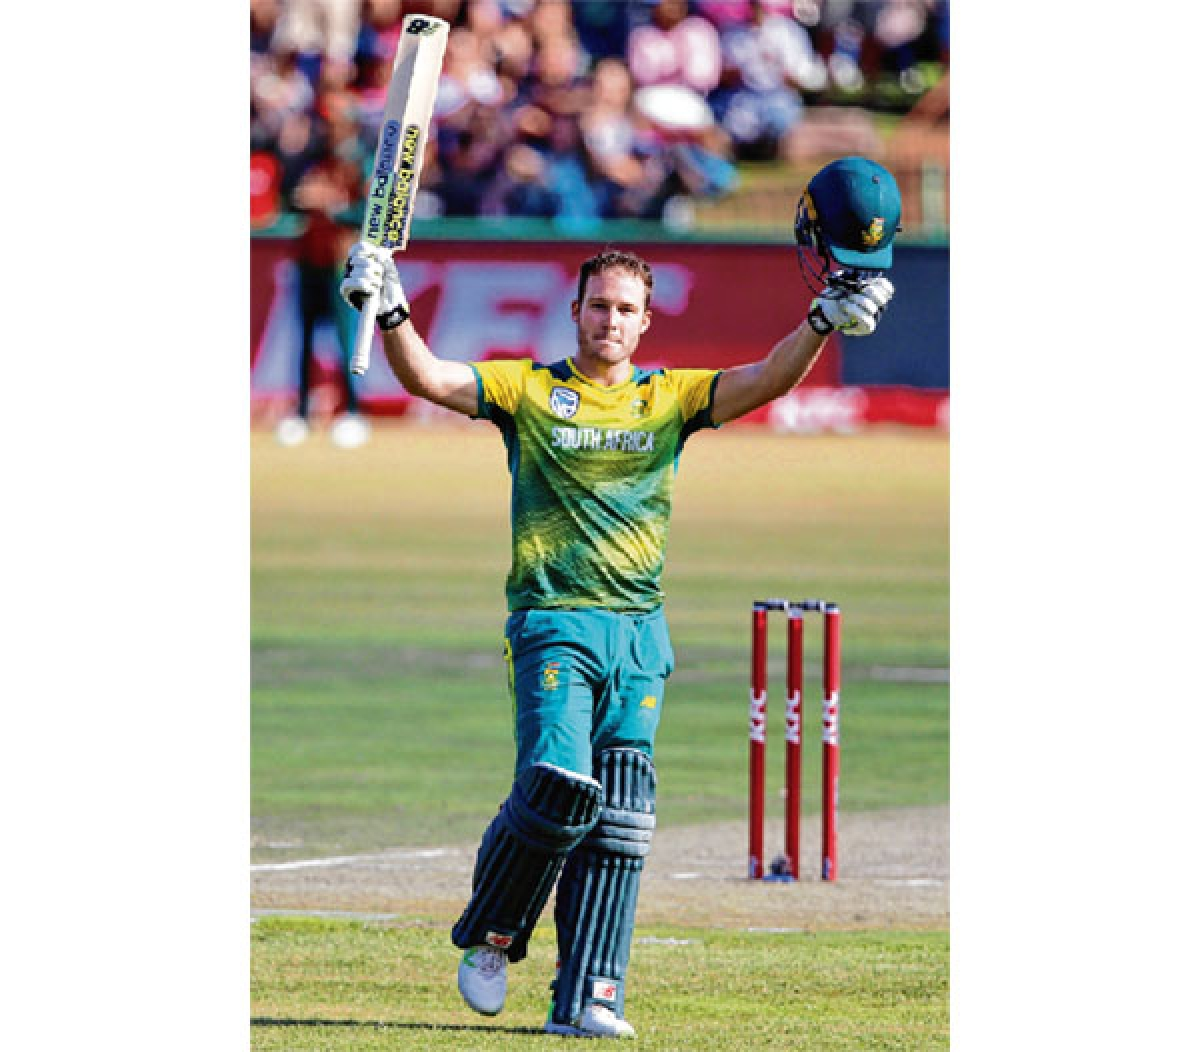 Miller hits fastest T20 ton as South Africa rout Bangladesh